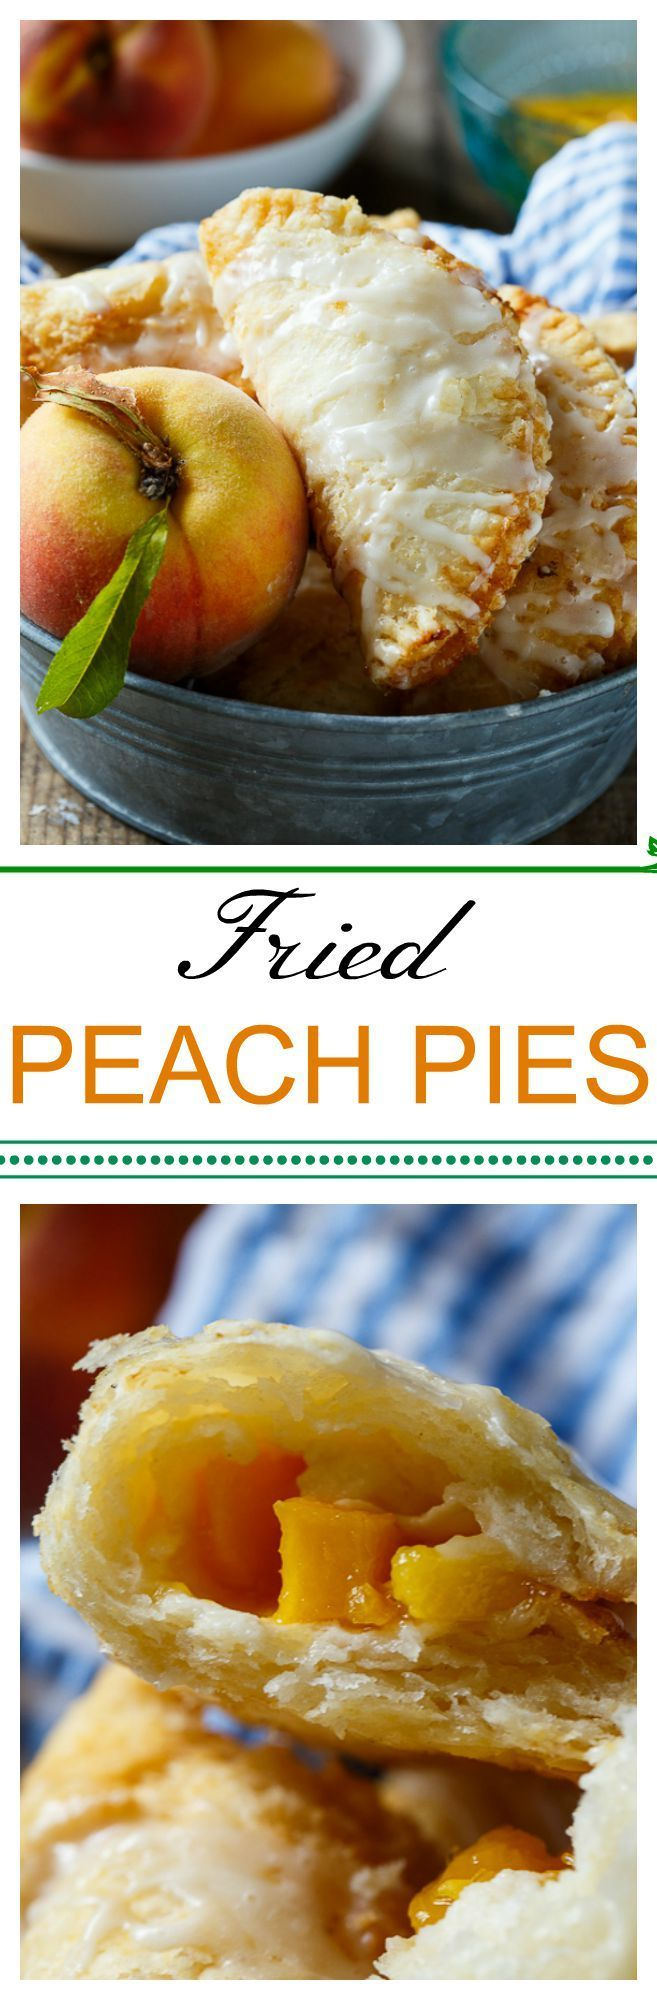 It's not a southern summer without fried peach pies!